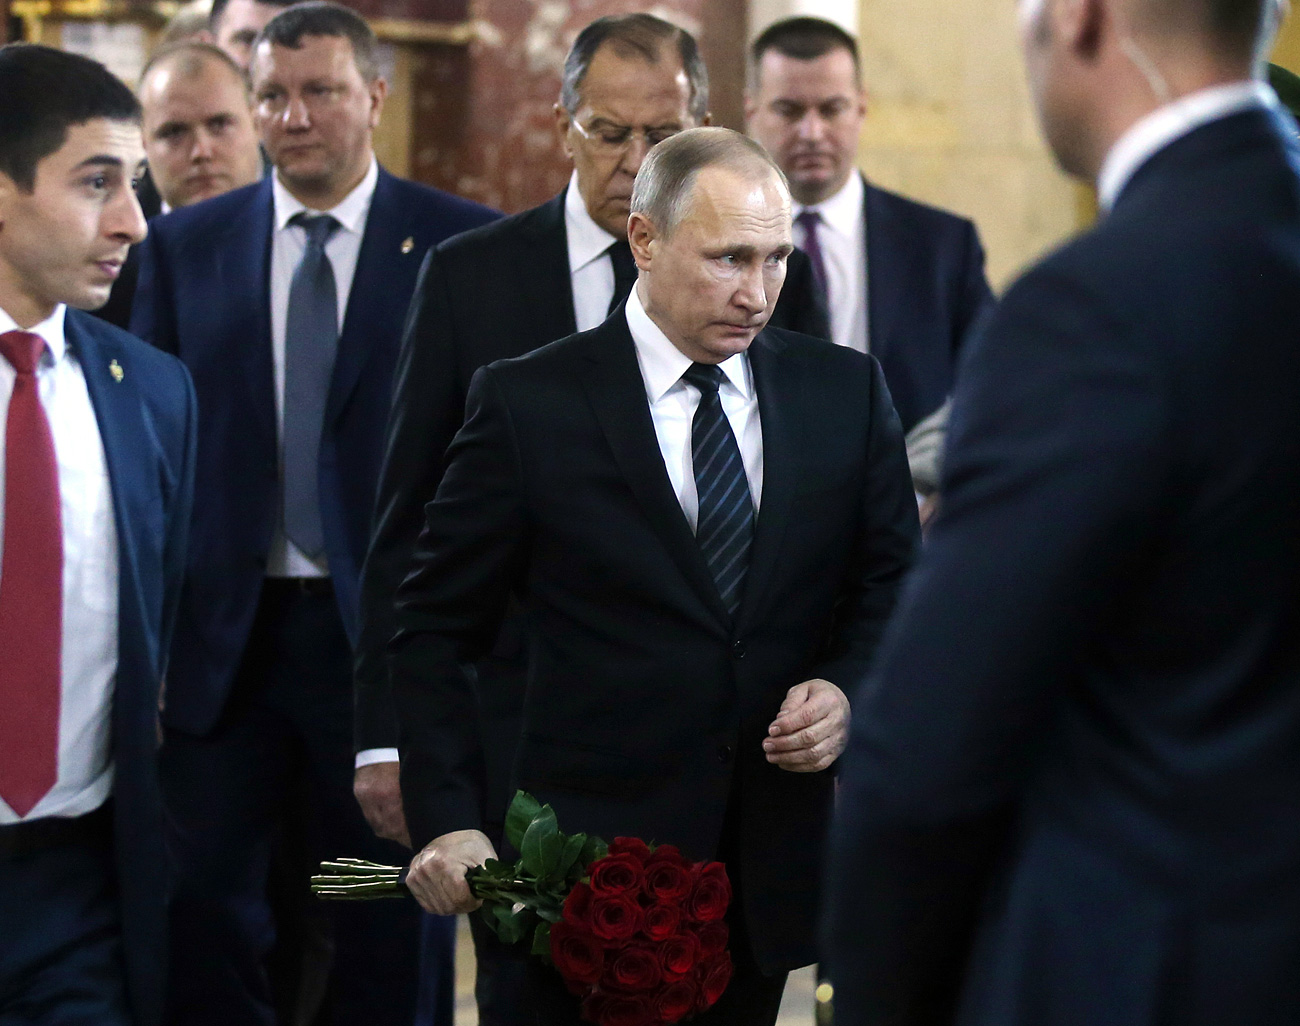 Dec. 22, 2016. Russian President Vladimir Putin at the ceremony to pay last respects to Russian Ambassador to Turkey Andrei Karlov, at the Russian Foreign Ministry.